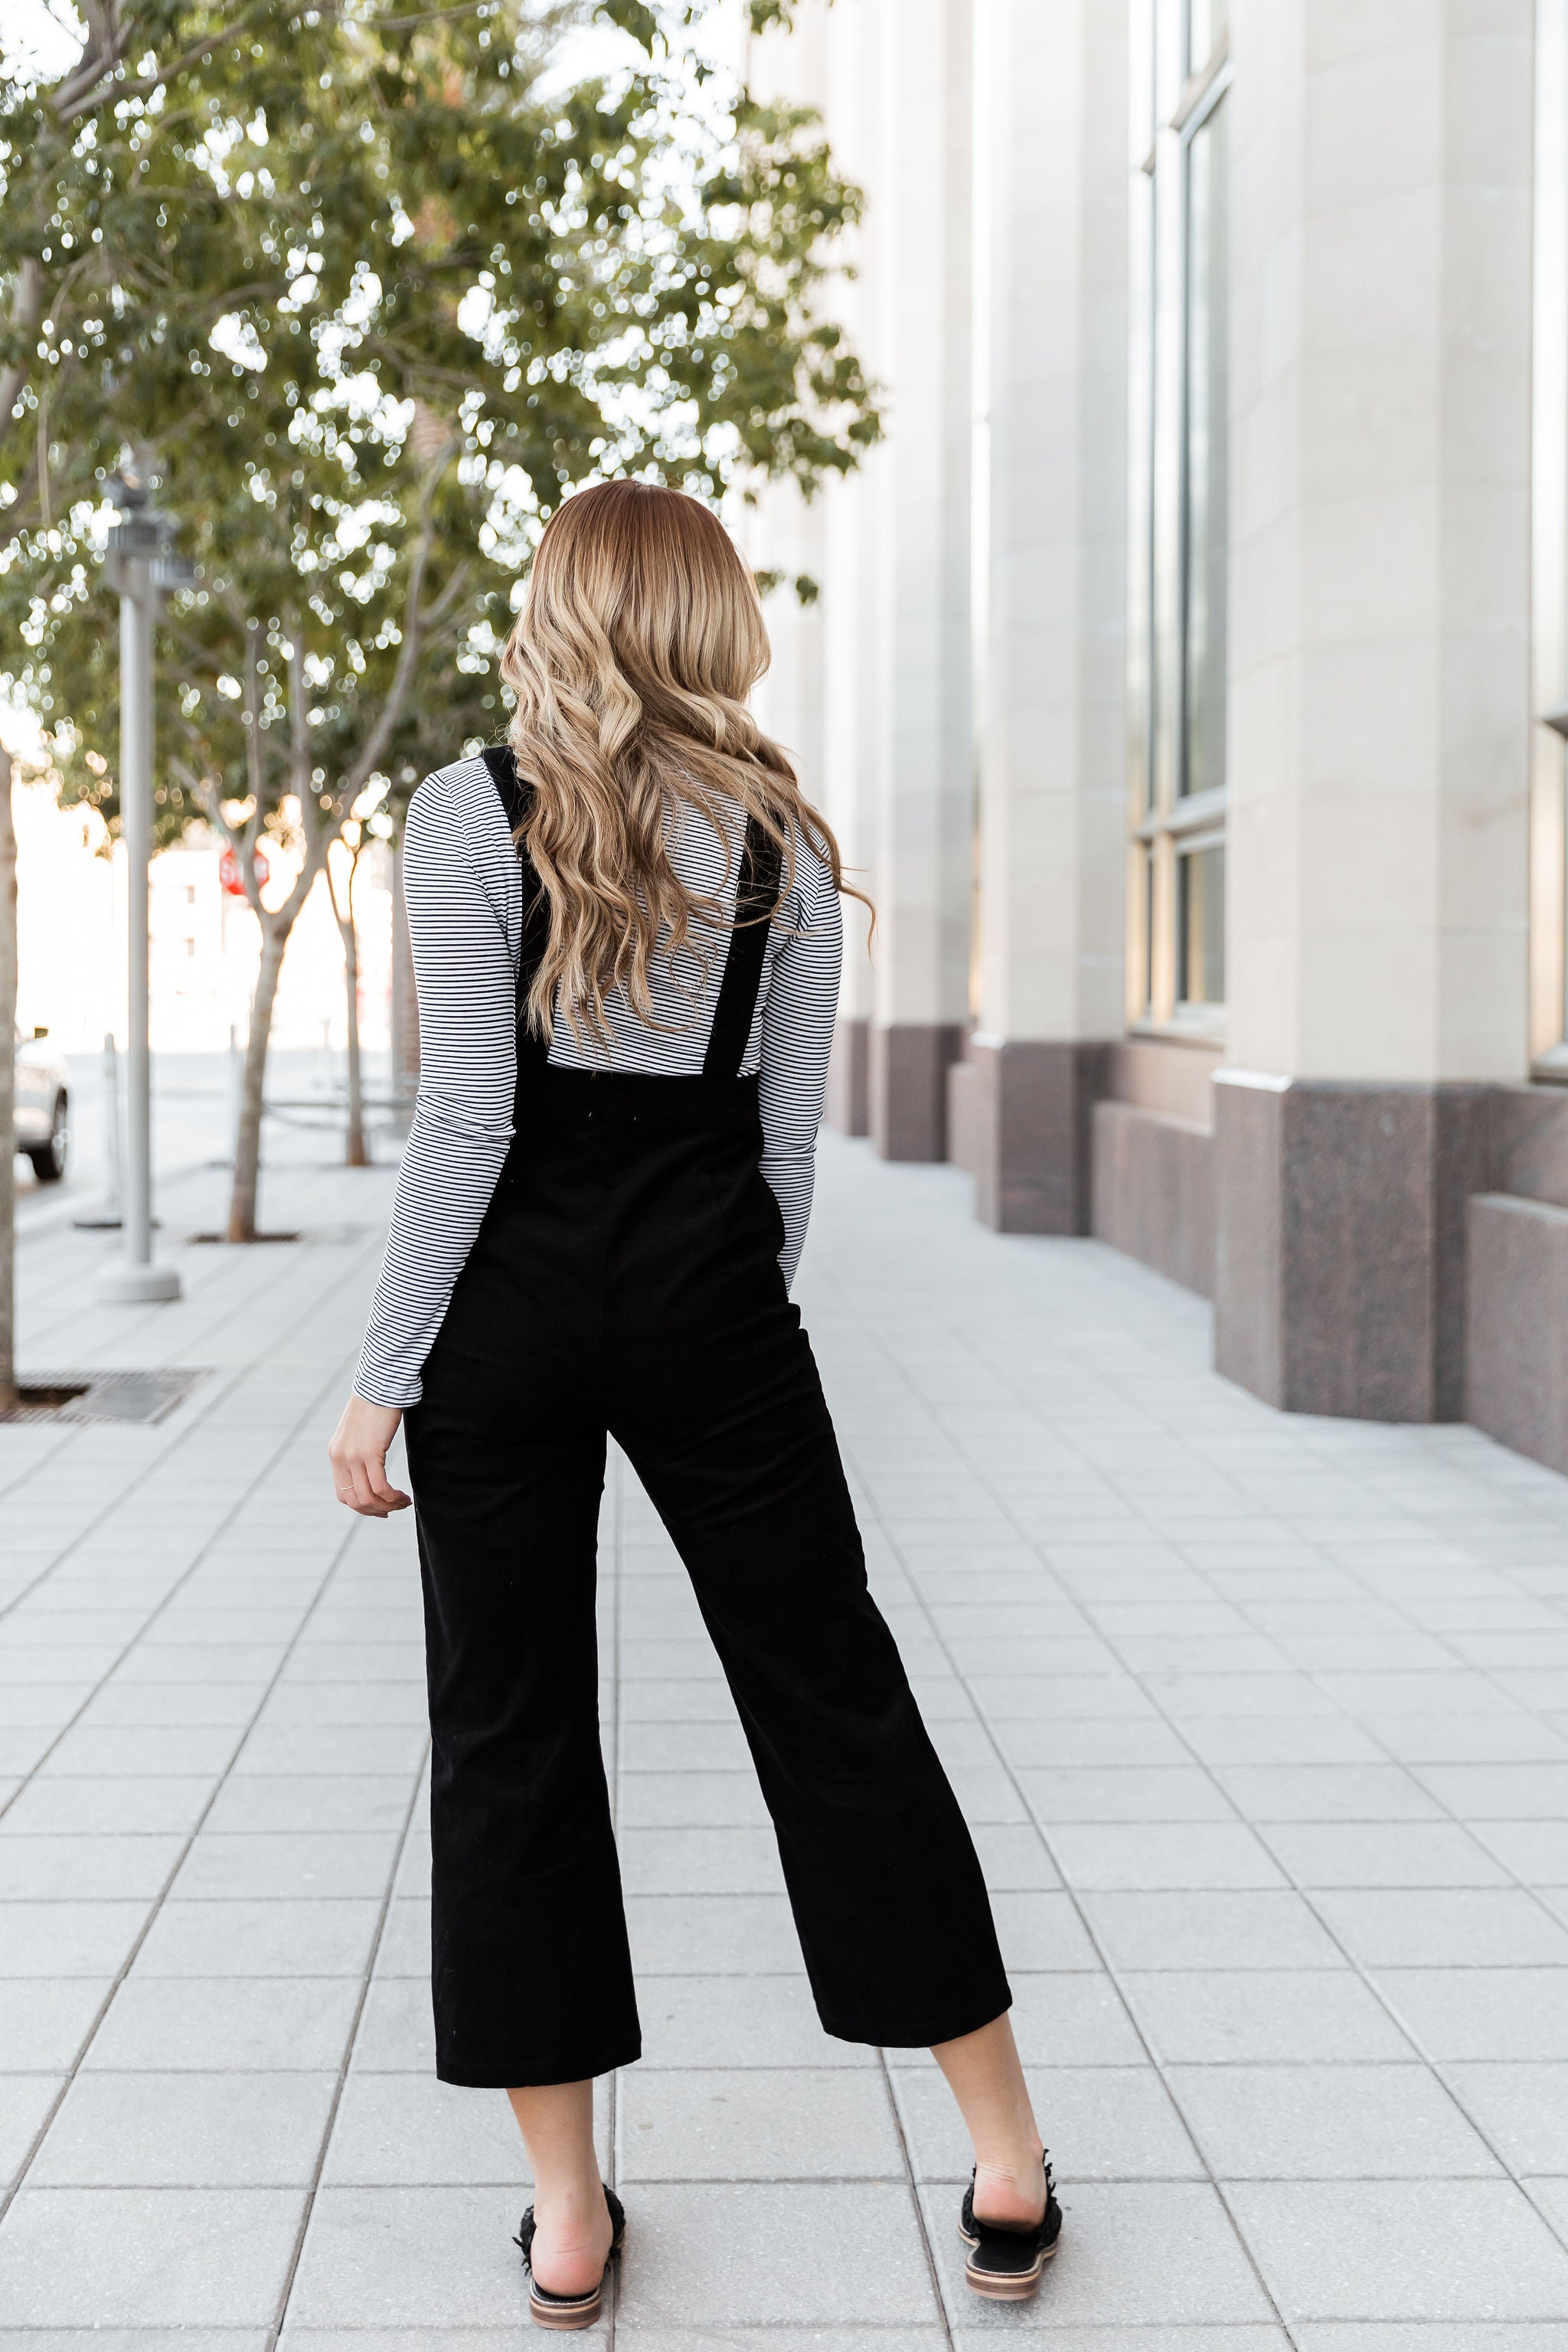 THE COLTON CORDUROY OVERALL PANTS IN BLACK